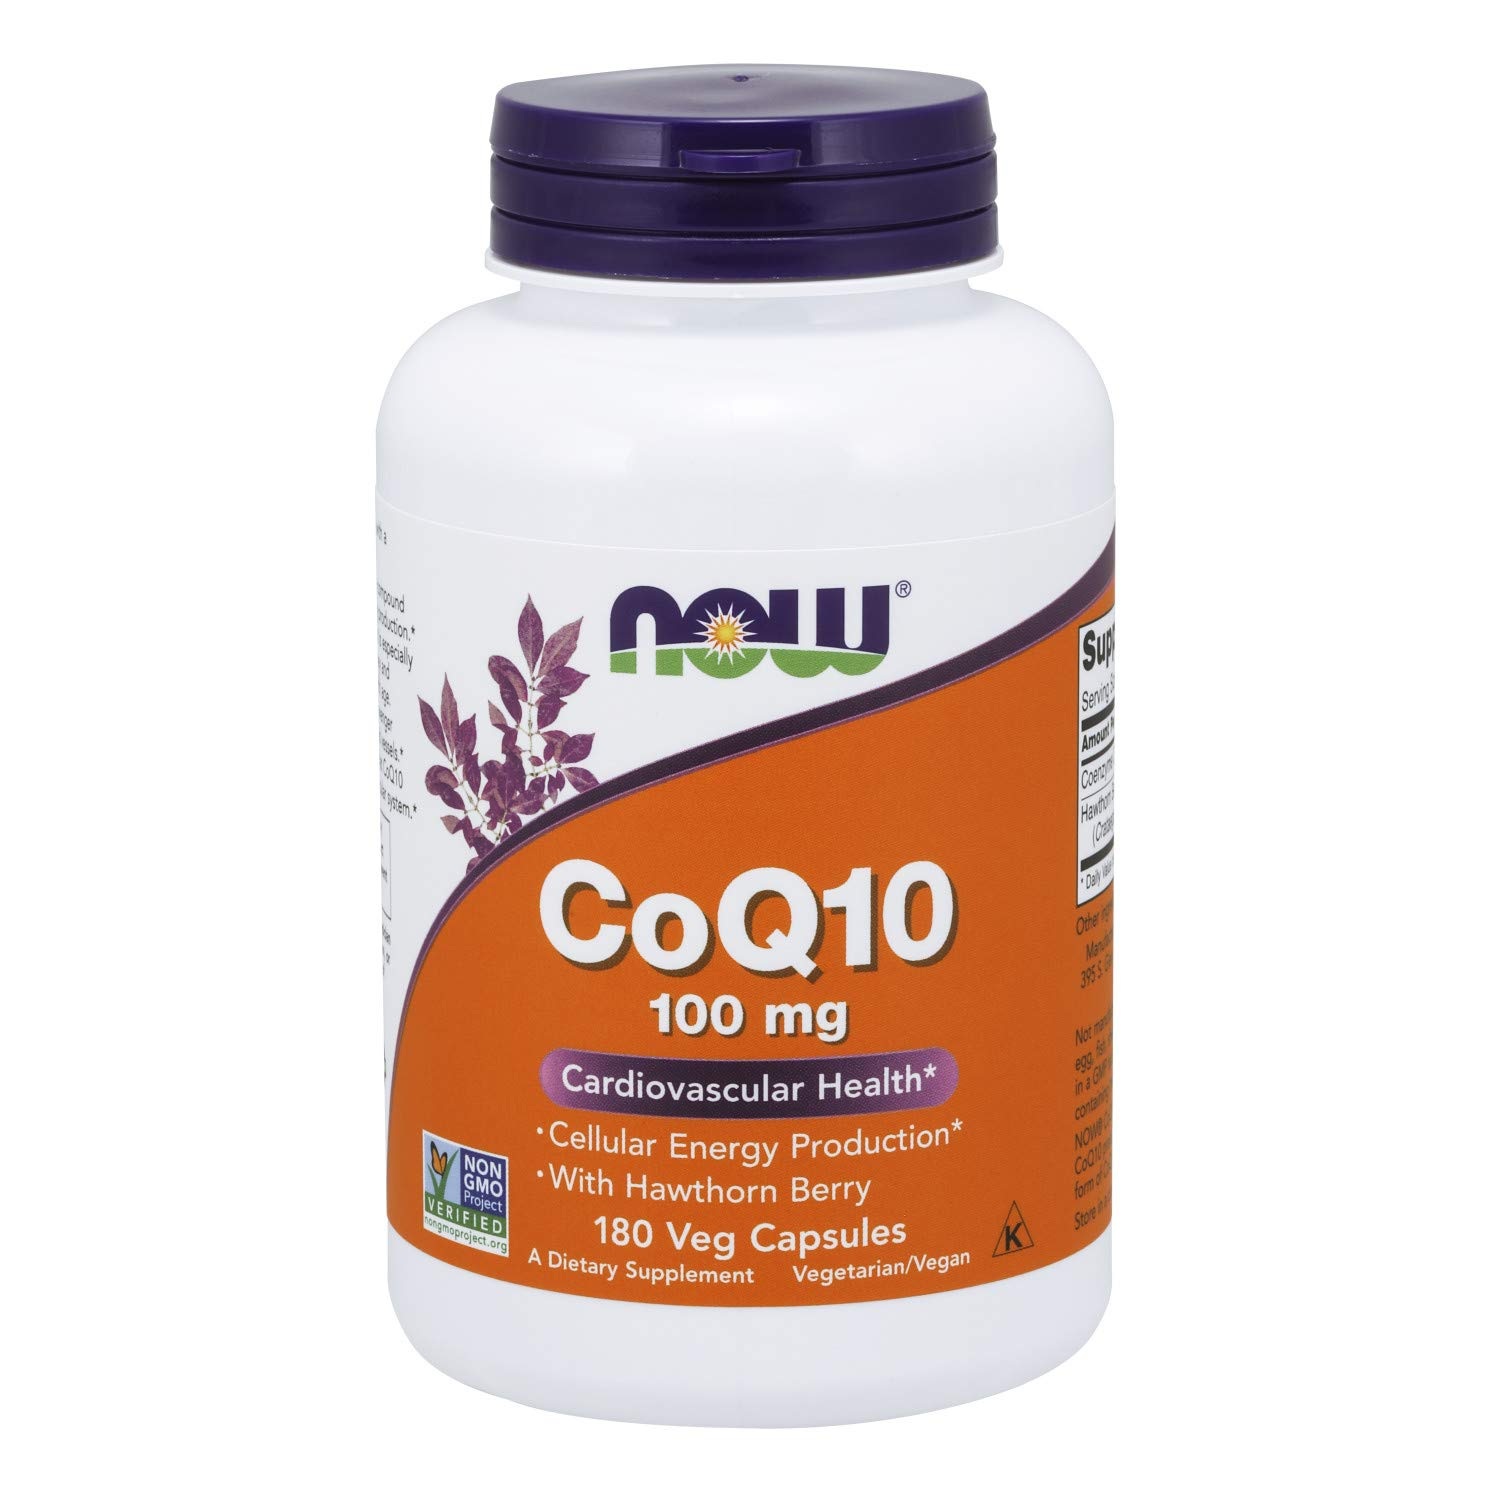 Now Supplements, CoQ10 100 mg with Hawthorn Berry, Pharmaceutical Grade, All-Trans Form Produced by Fermentation, 180 Veg Capsules by NOW Foods